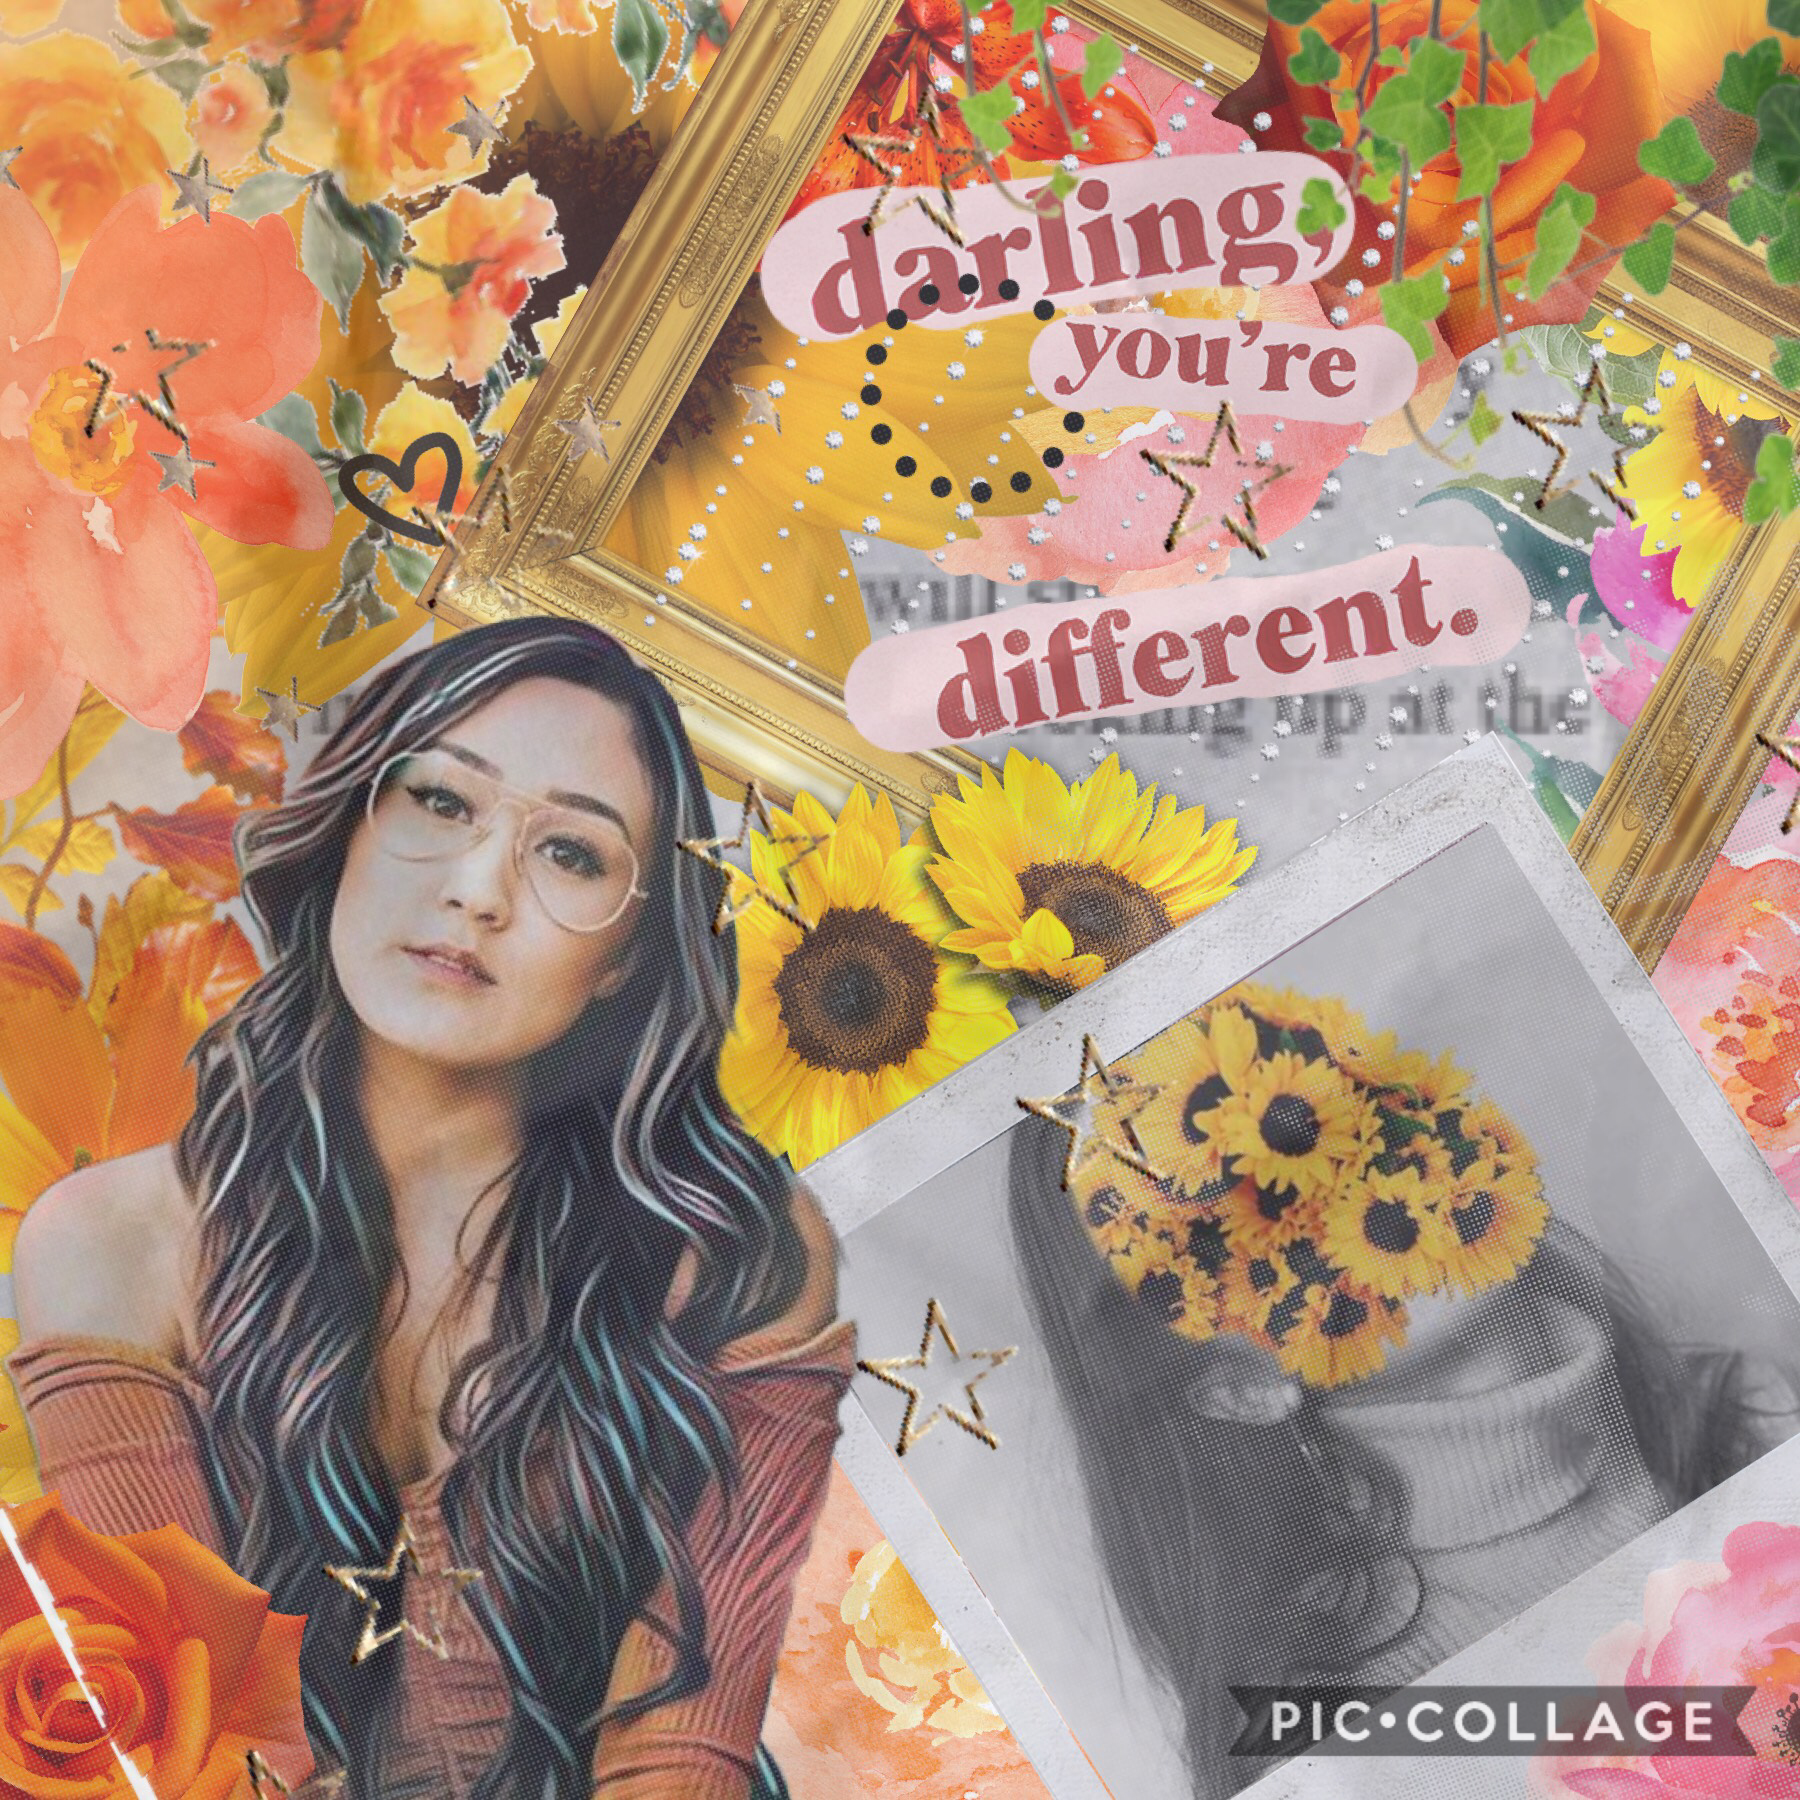 Tapyyy  Orange-themed🧡 - - - - - - - - - - - - - - -  I kinda like this...I'm hoping for a feature- ✨  I have a second acc! 'secretly-admiring-you' u can find it in my followers or following section. I'm giving out free advice and ғαиραɢɛƨ!  Thx and also-